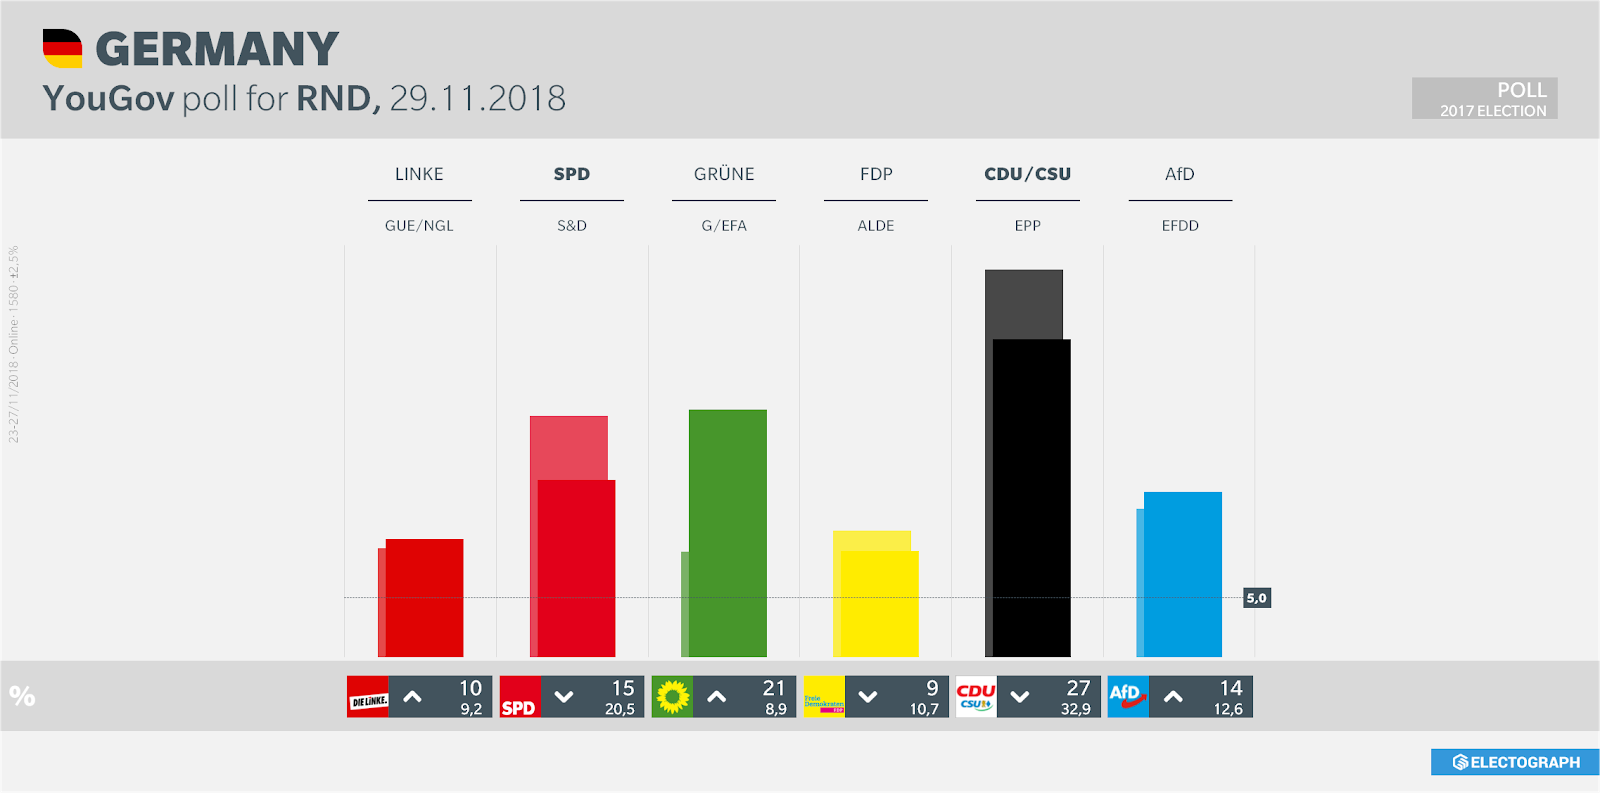 GERMANY: YouGov poll chart for RND, 29 November 2018